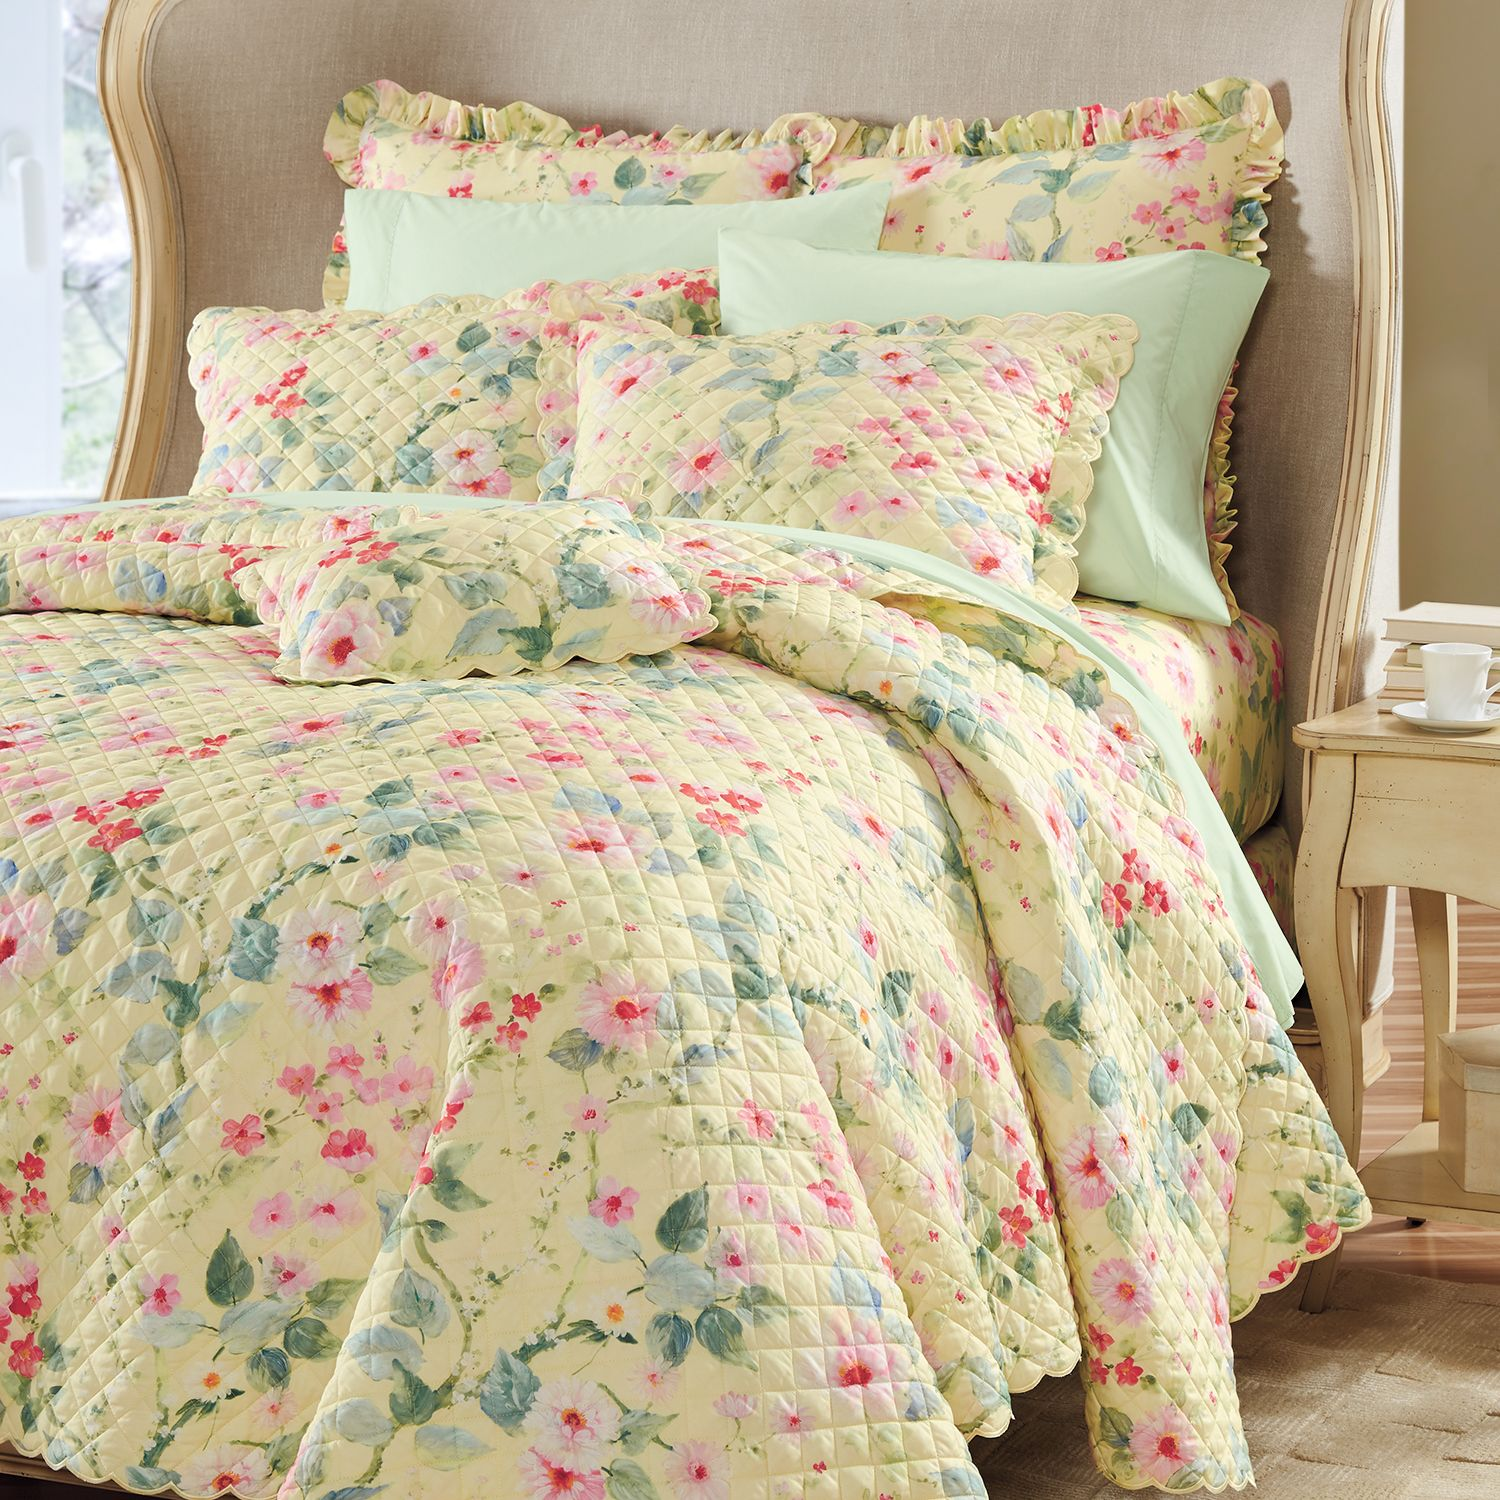 Lisette Floral Quilted Percale Coverlet Cuddledown Exclusive Winter 2018 Coverlet Quilt Floral Luxury Bedding Premium Bedding Yellow Sheets What is a coverlet quilt